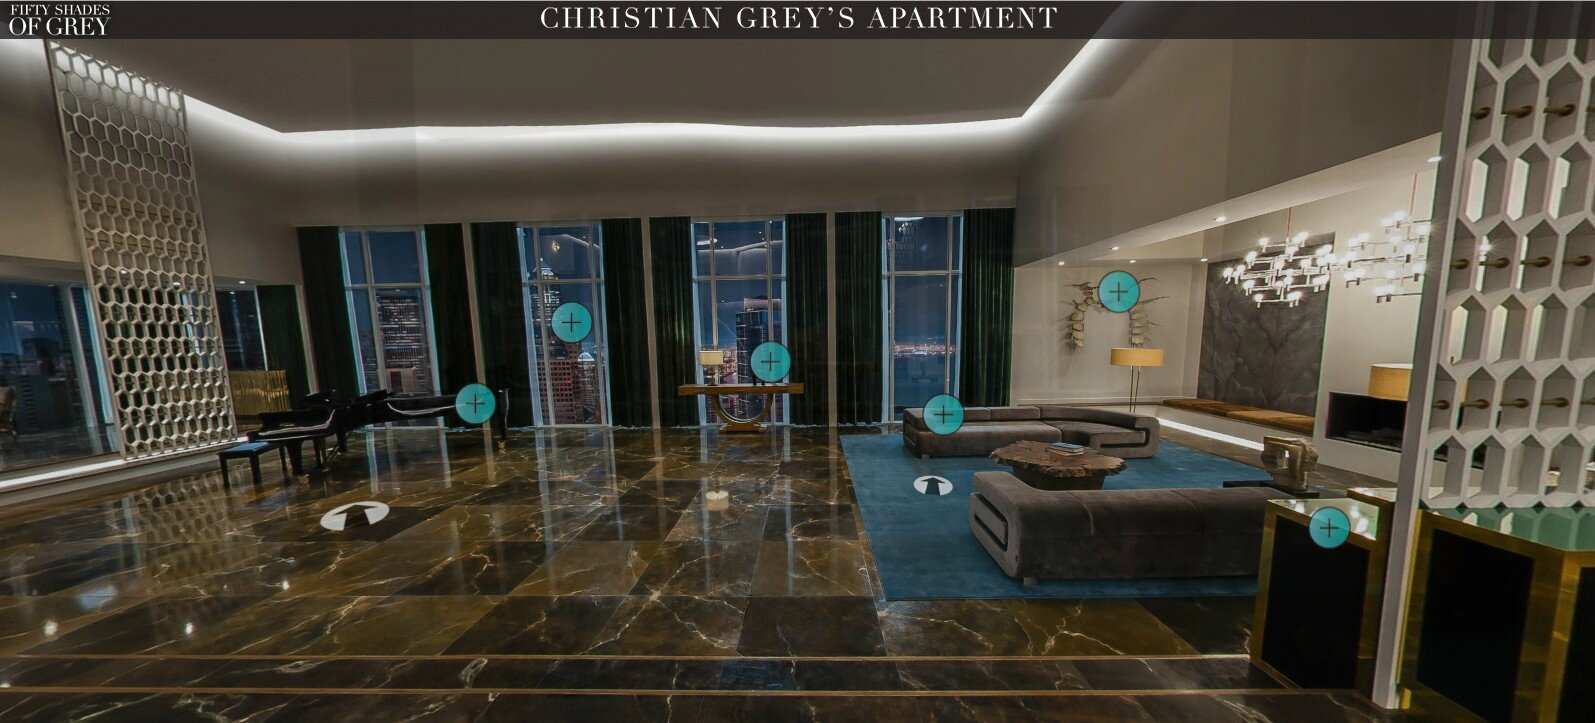 L 39 appartement de christian grey pr sent par sam taylor for Chambre 50 nuances de grey